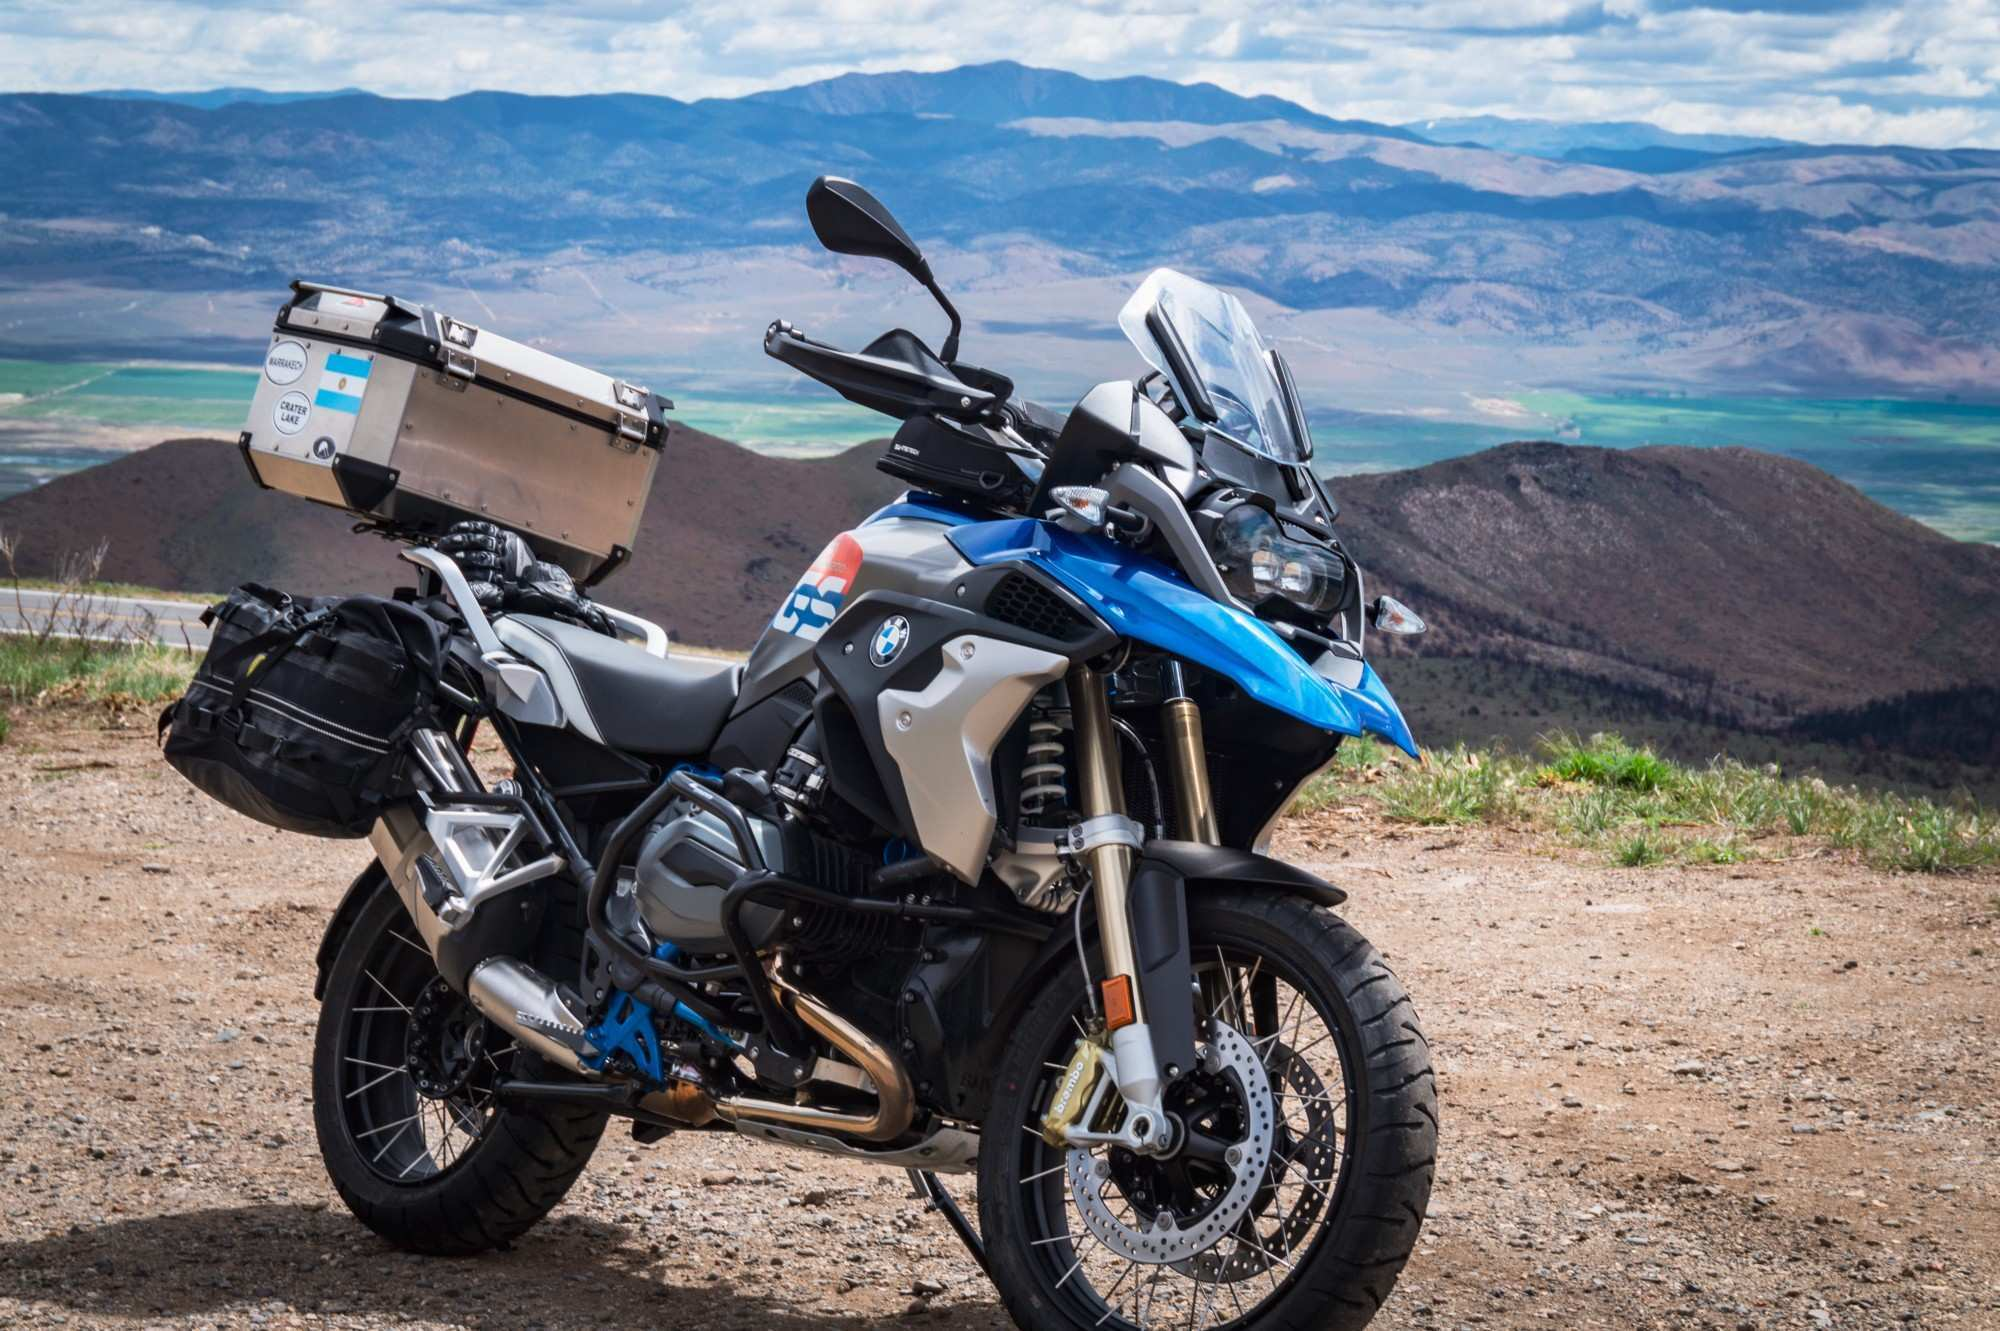 41 Gallery of 2020 Bmw R1200Gs Exterior for 2020 Bmw R1200Gs